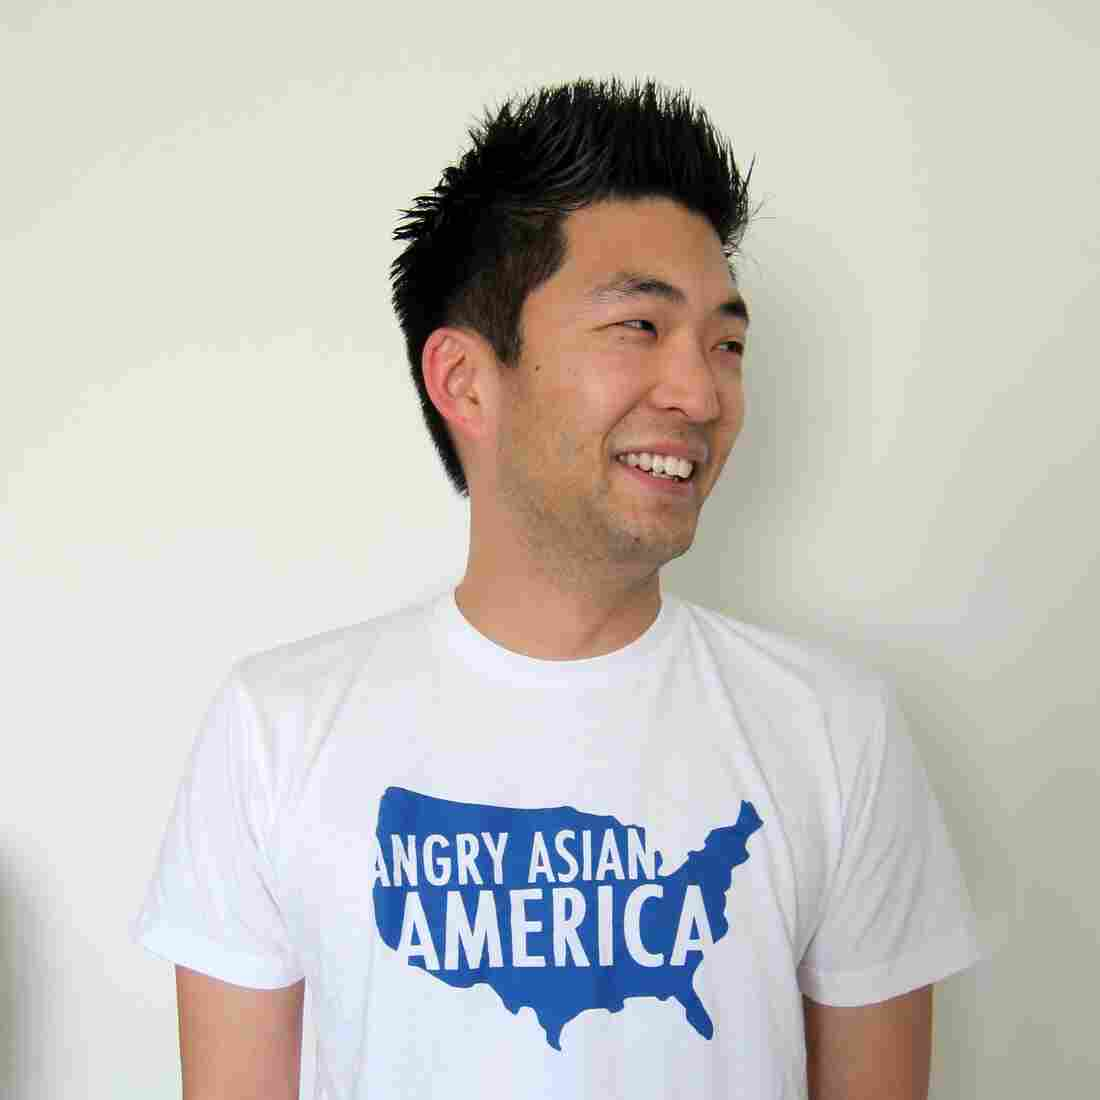 When Phil Yu started the blog 'Angry Asian Man' in 2001, he didn't think too many people who weren't friends or family would read it.